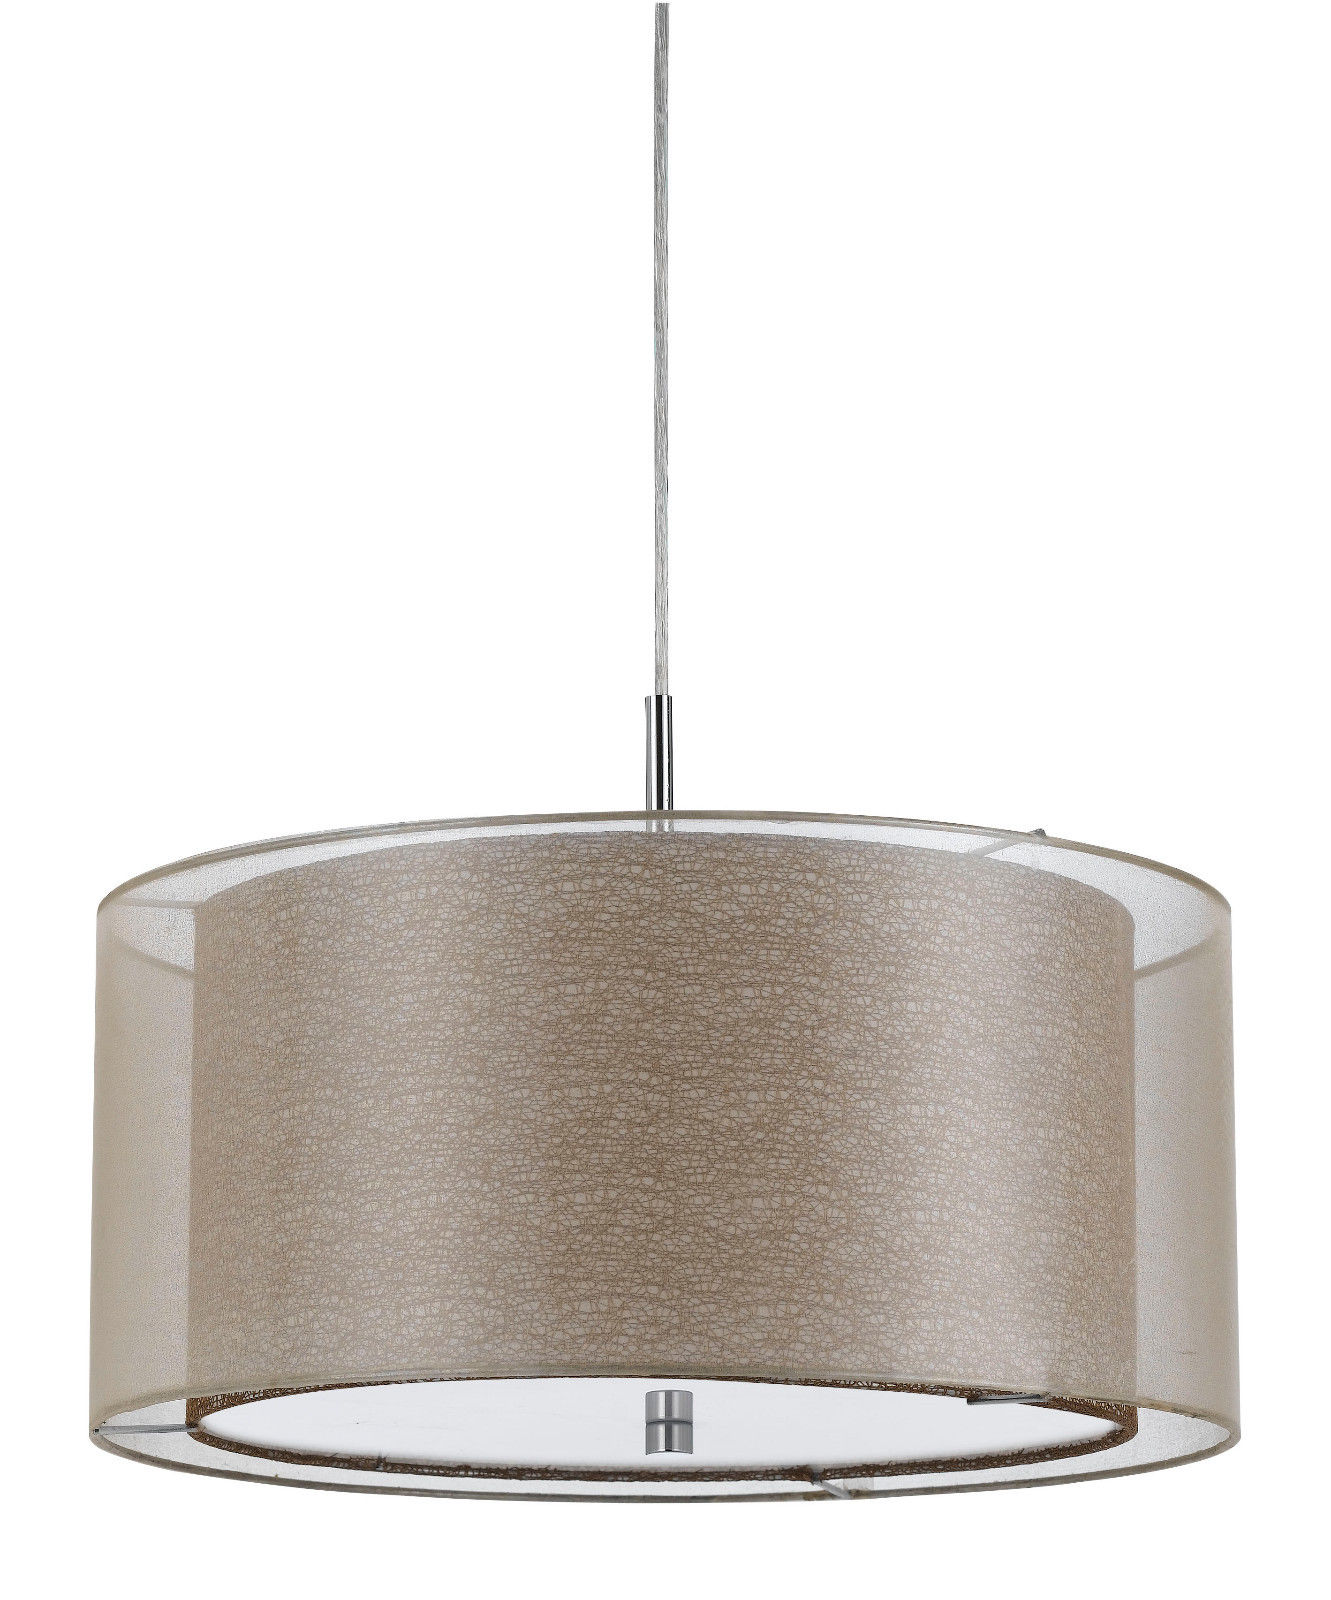 Sheer Drum Pendant Light Jpg